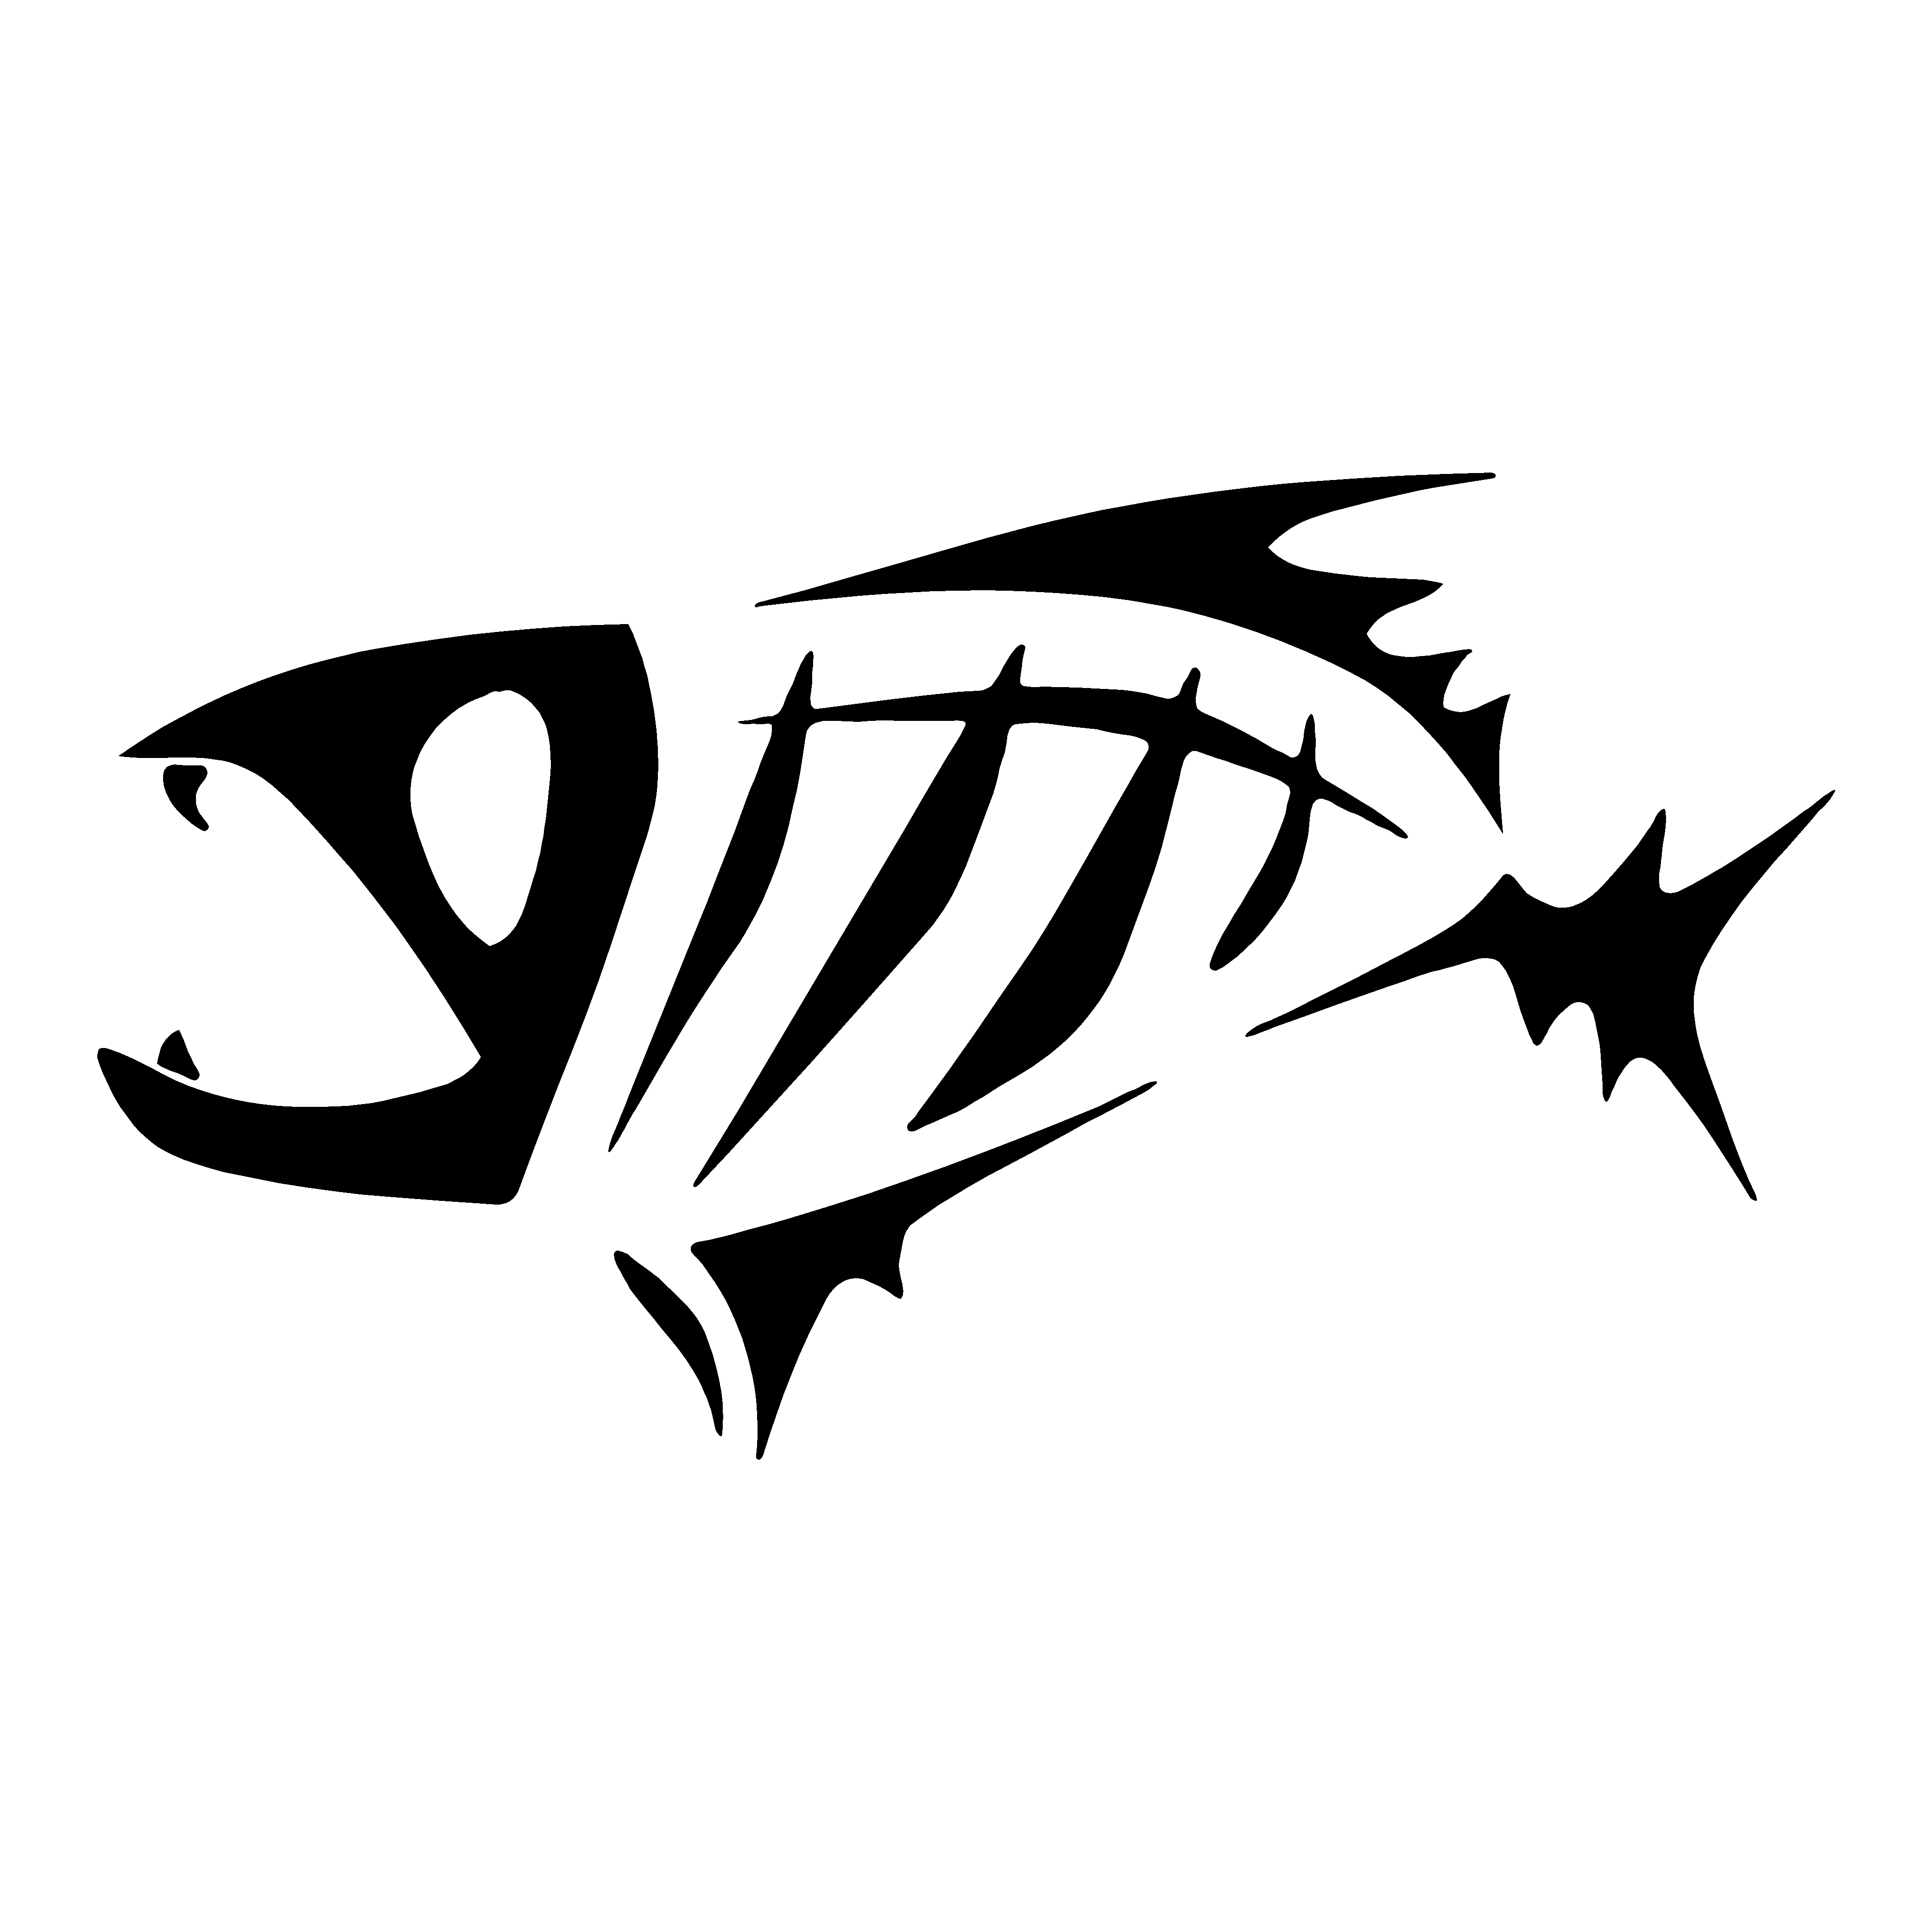 Skeleton fish fishing and hunting stickers car decals for Fish skeleton decal